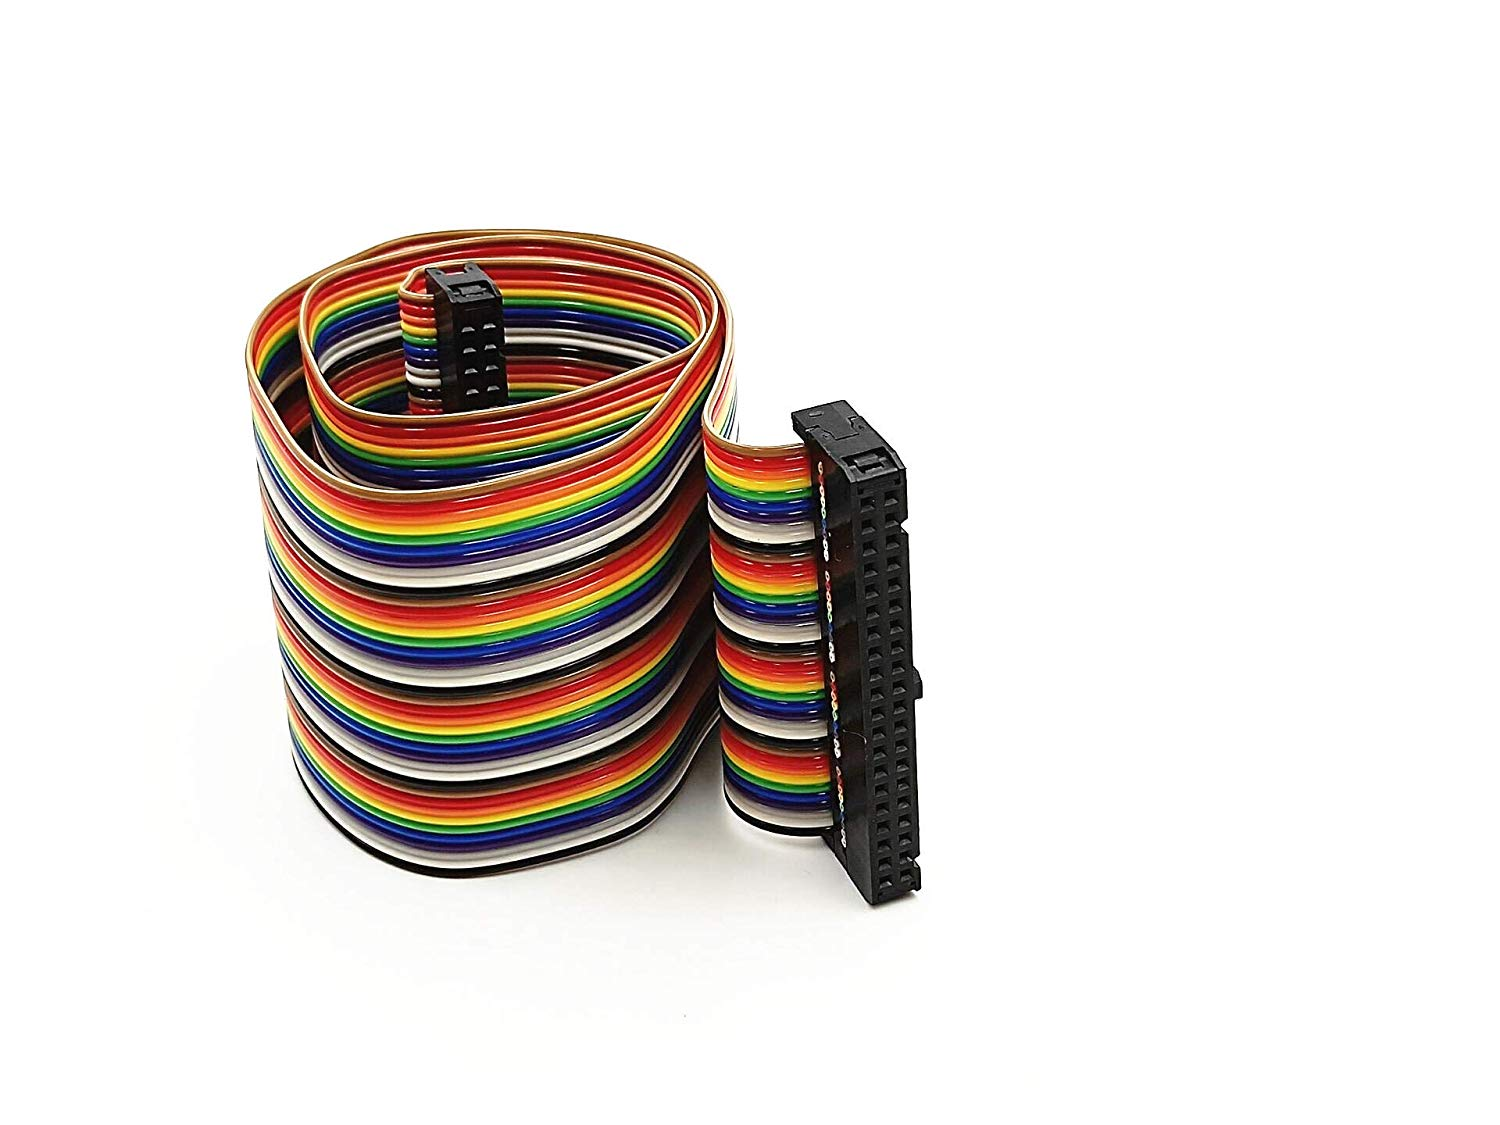 BLS 2.54mm Pitch 40 Pin 40 Way F/F Connector IDC Flat Rainbow Ribbon Cable 1.7ft